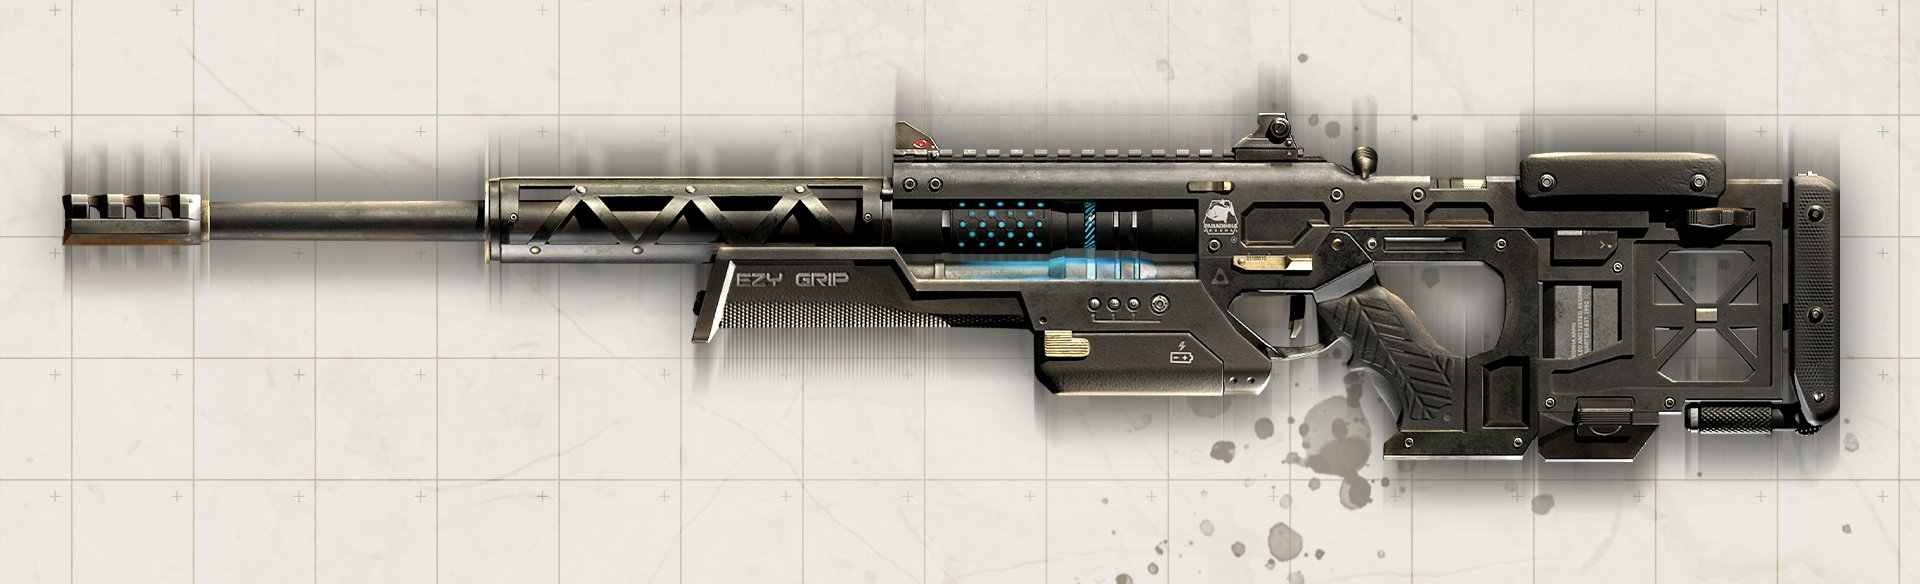 Apex Legends Sentinel Sniper Rifle